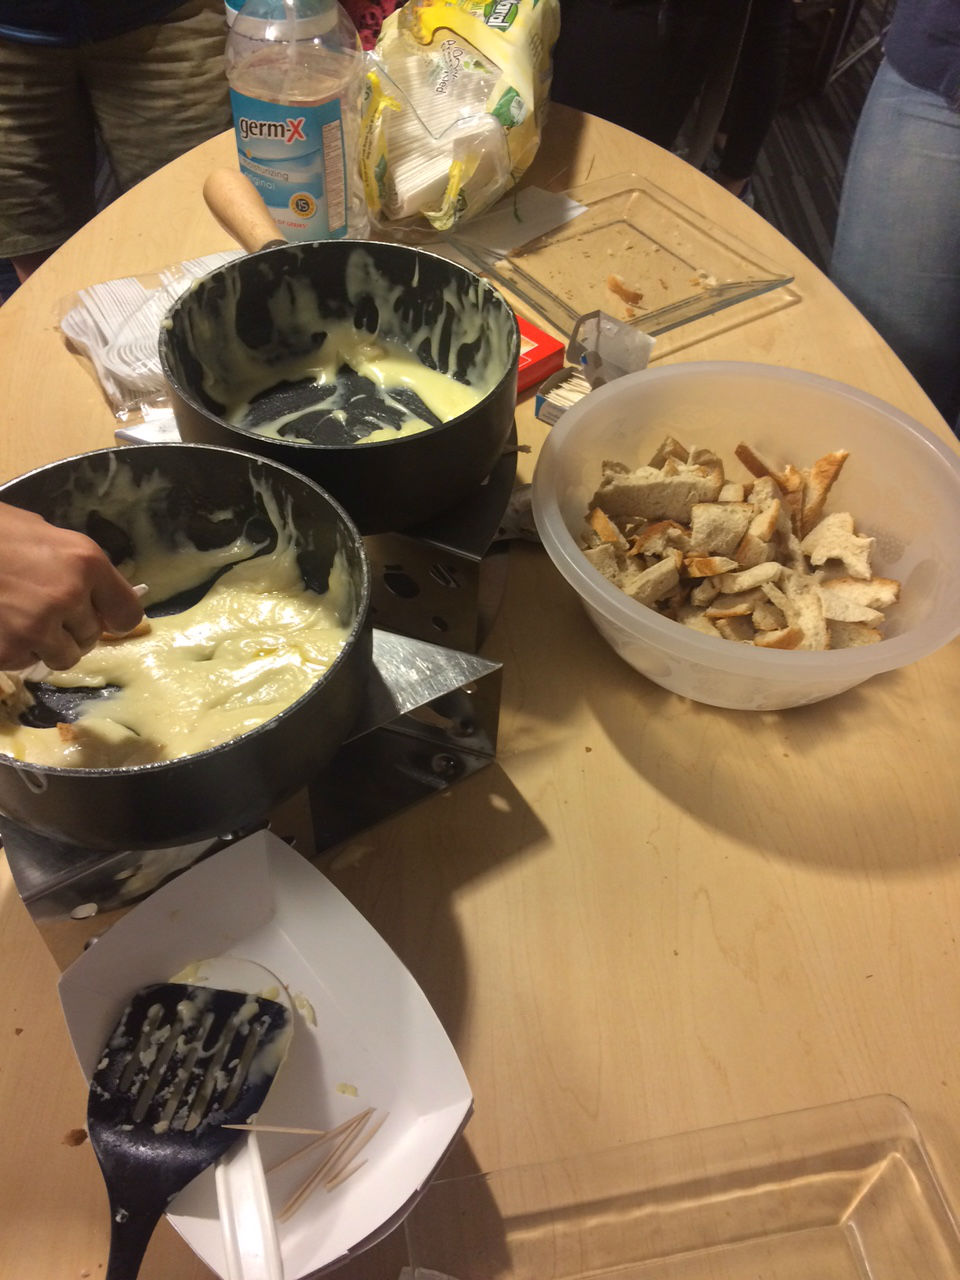 Dip bread into cheese and enjoy Fondue!